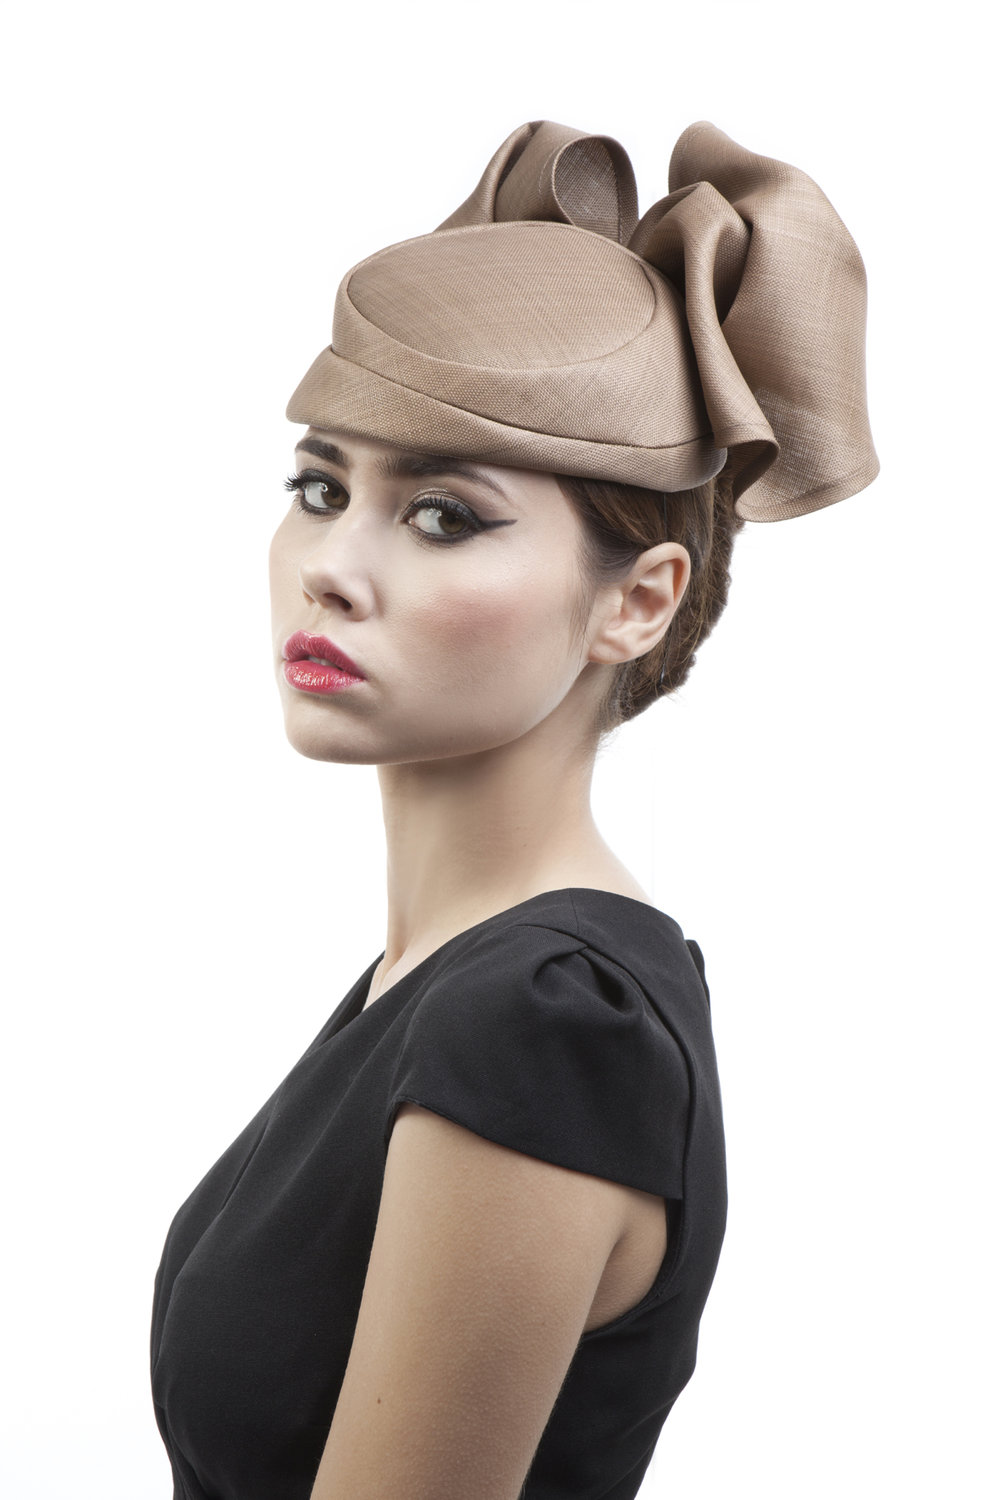 'Samantha' pillbox hat in coffee laize